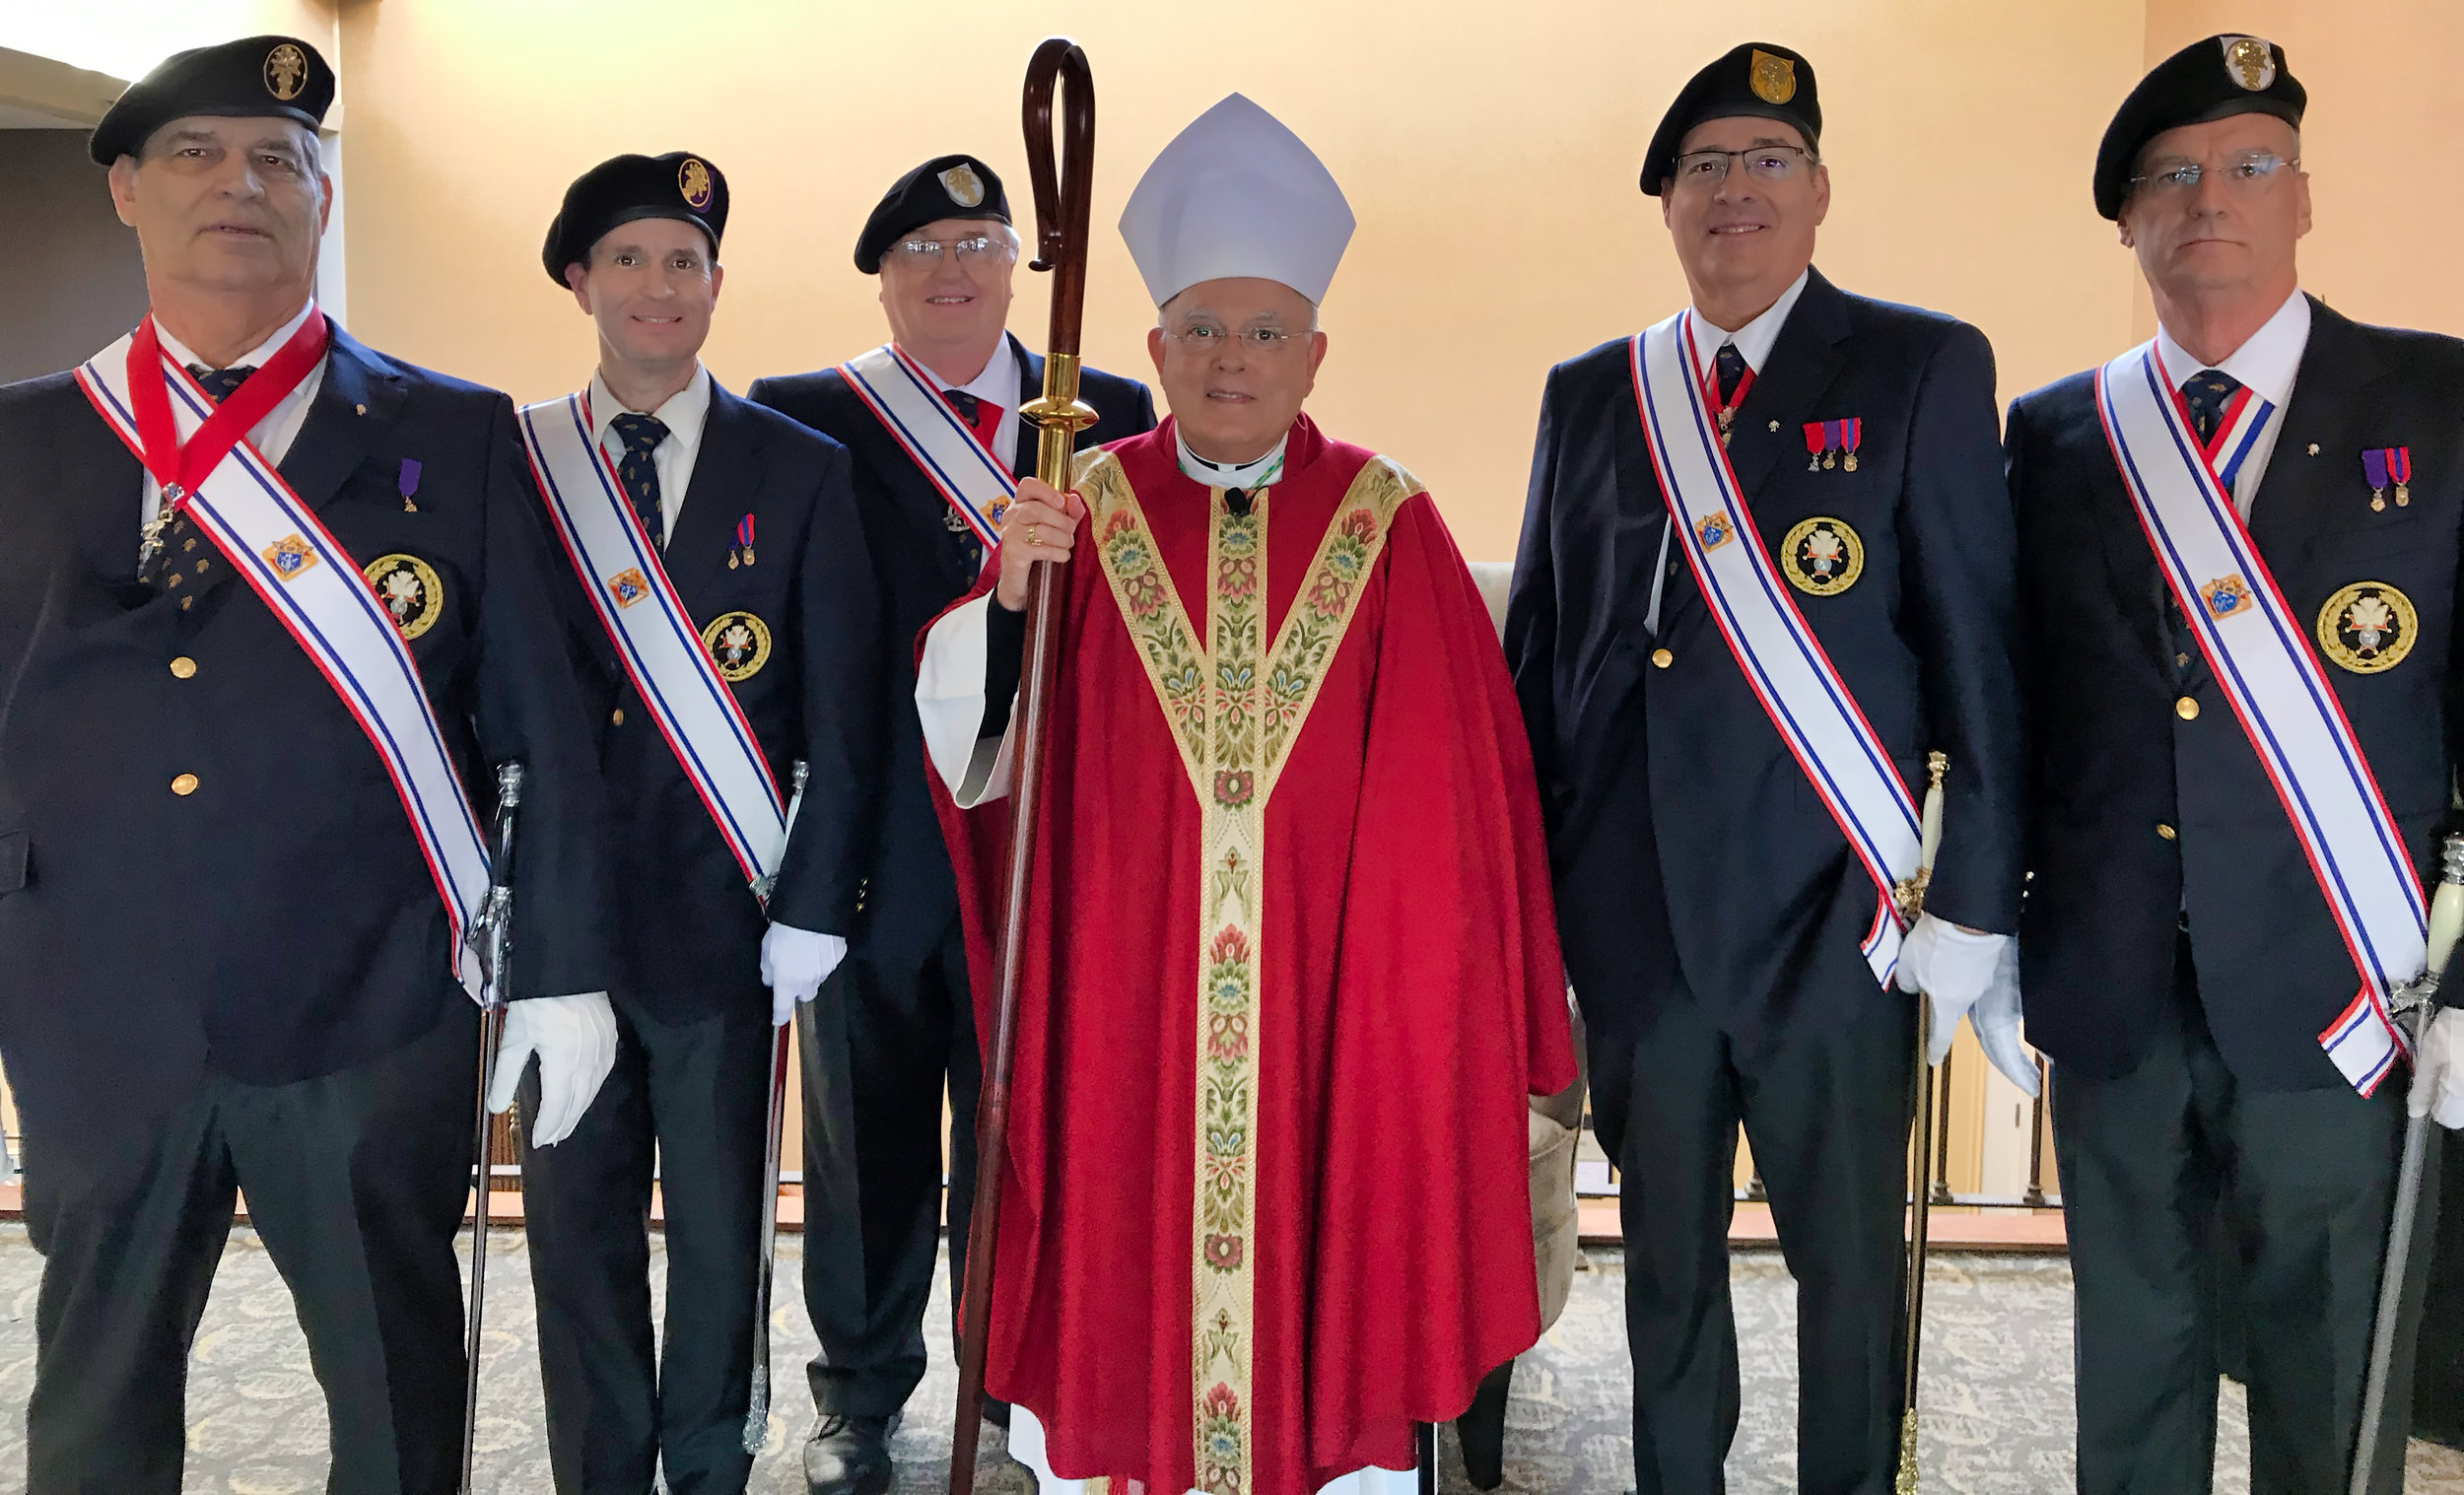 Most Reverend Charles J. Chaput, O.F.M. Cap., Archbishop of Philadelphia at the KofC State Convention in King of Prussia, PA with Sir Knights as Color Corps.